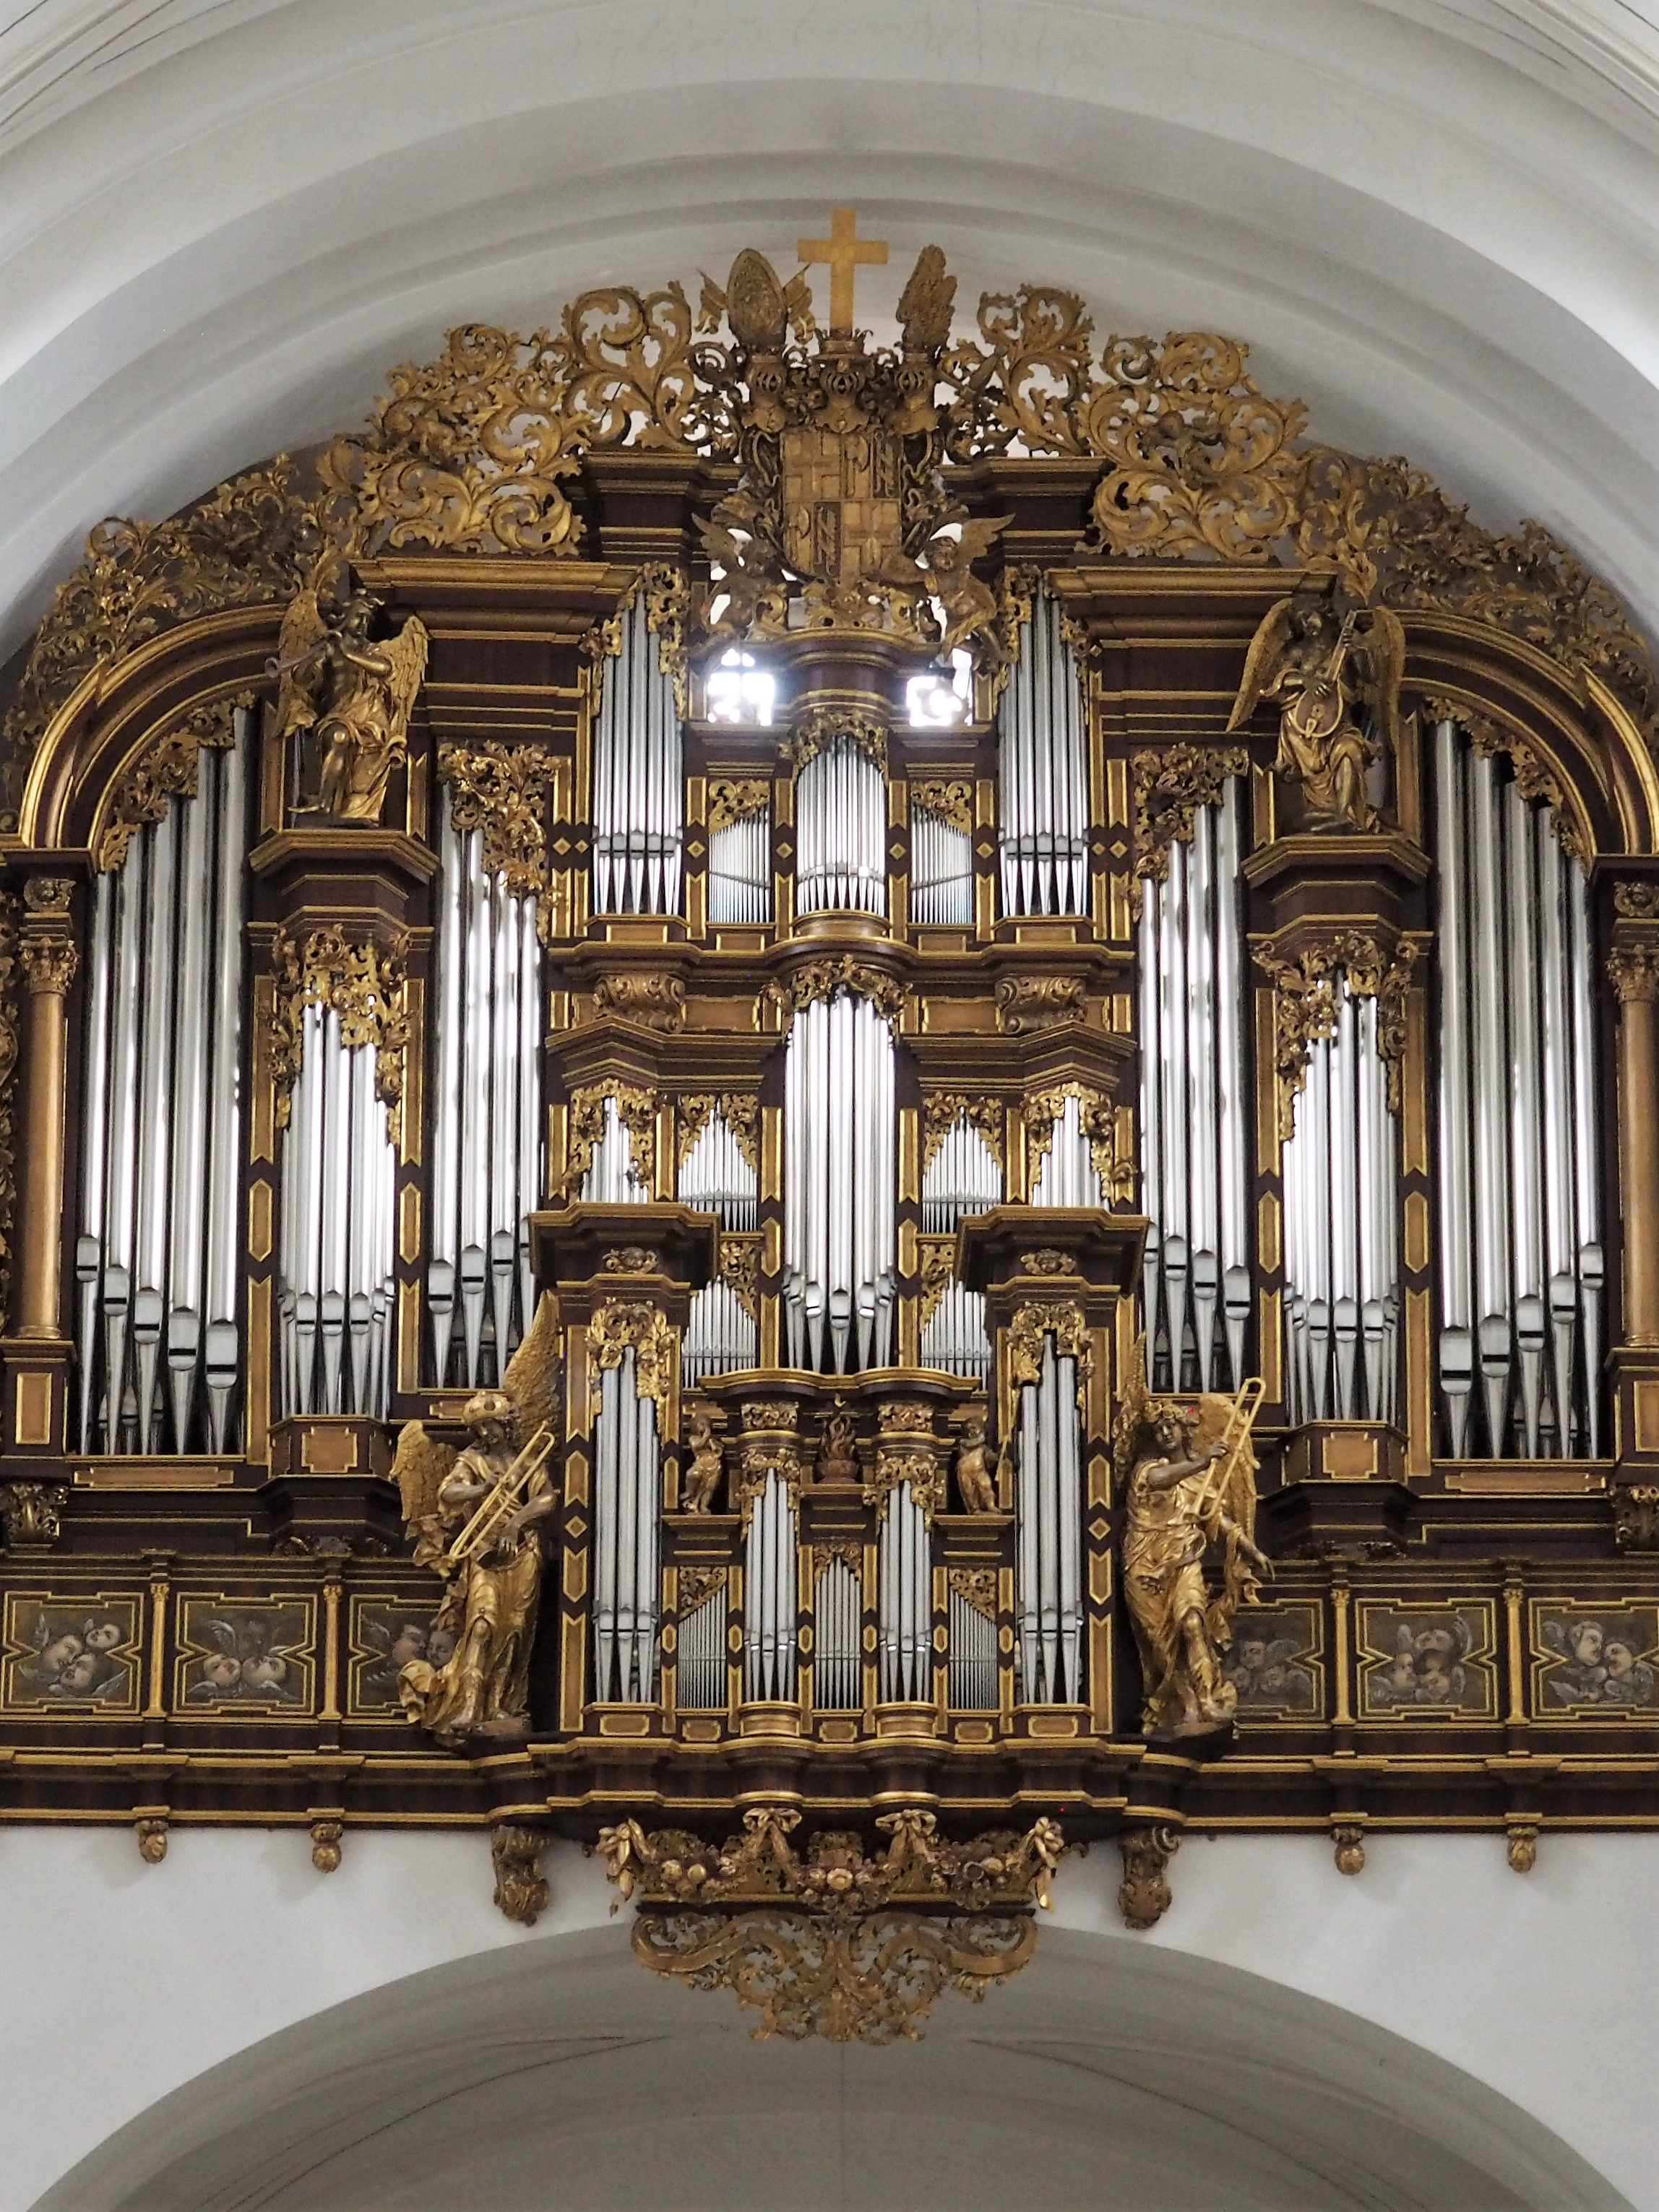 Imposante Orgel im Dom St. Salvator in Fulda